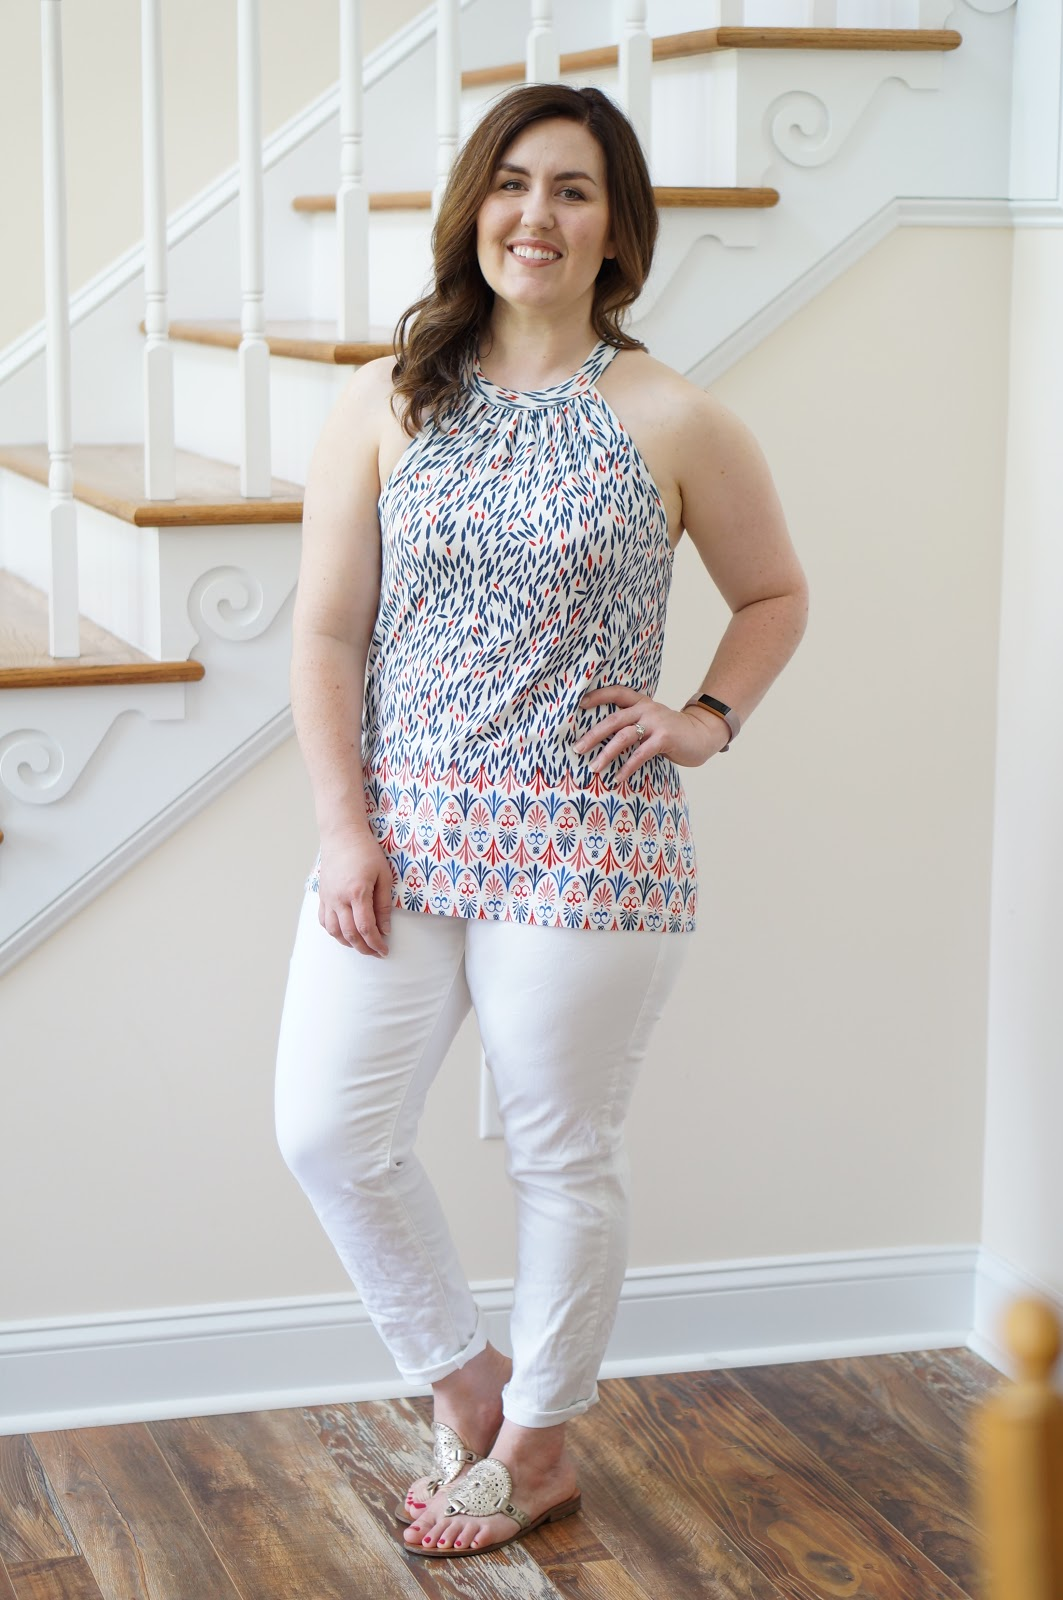 Popular North Carolina style blogger Rebecca Lately shares a patriotic outfit perfect for summer.  Click here to see some of her newest pieces from Stitch Fix!